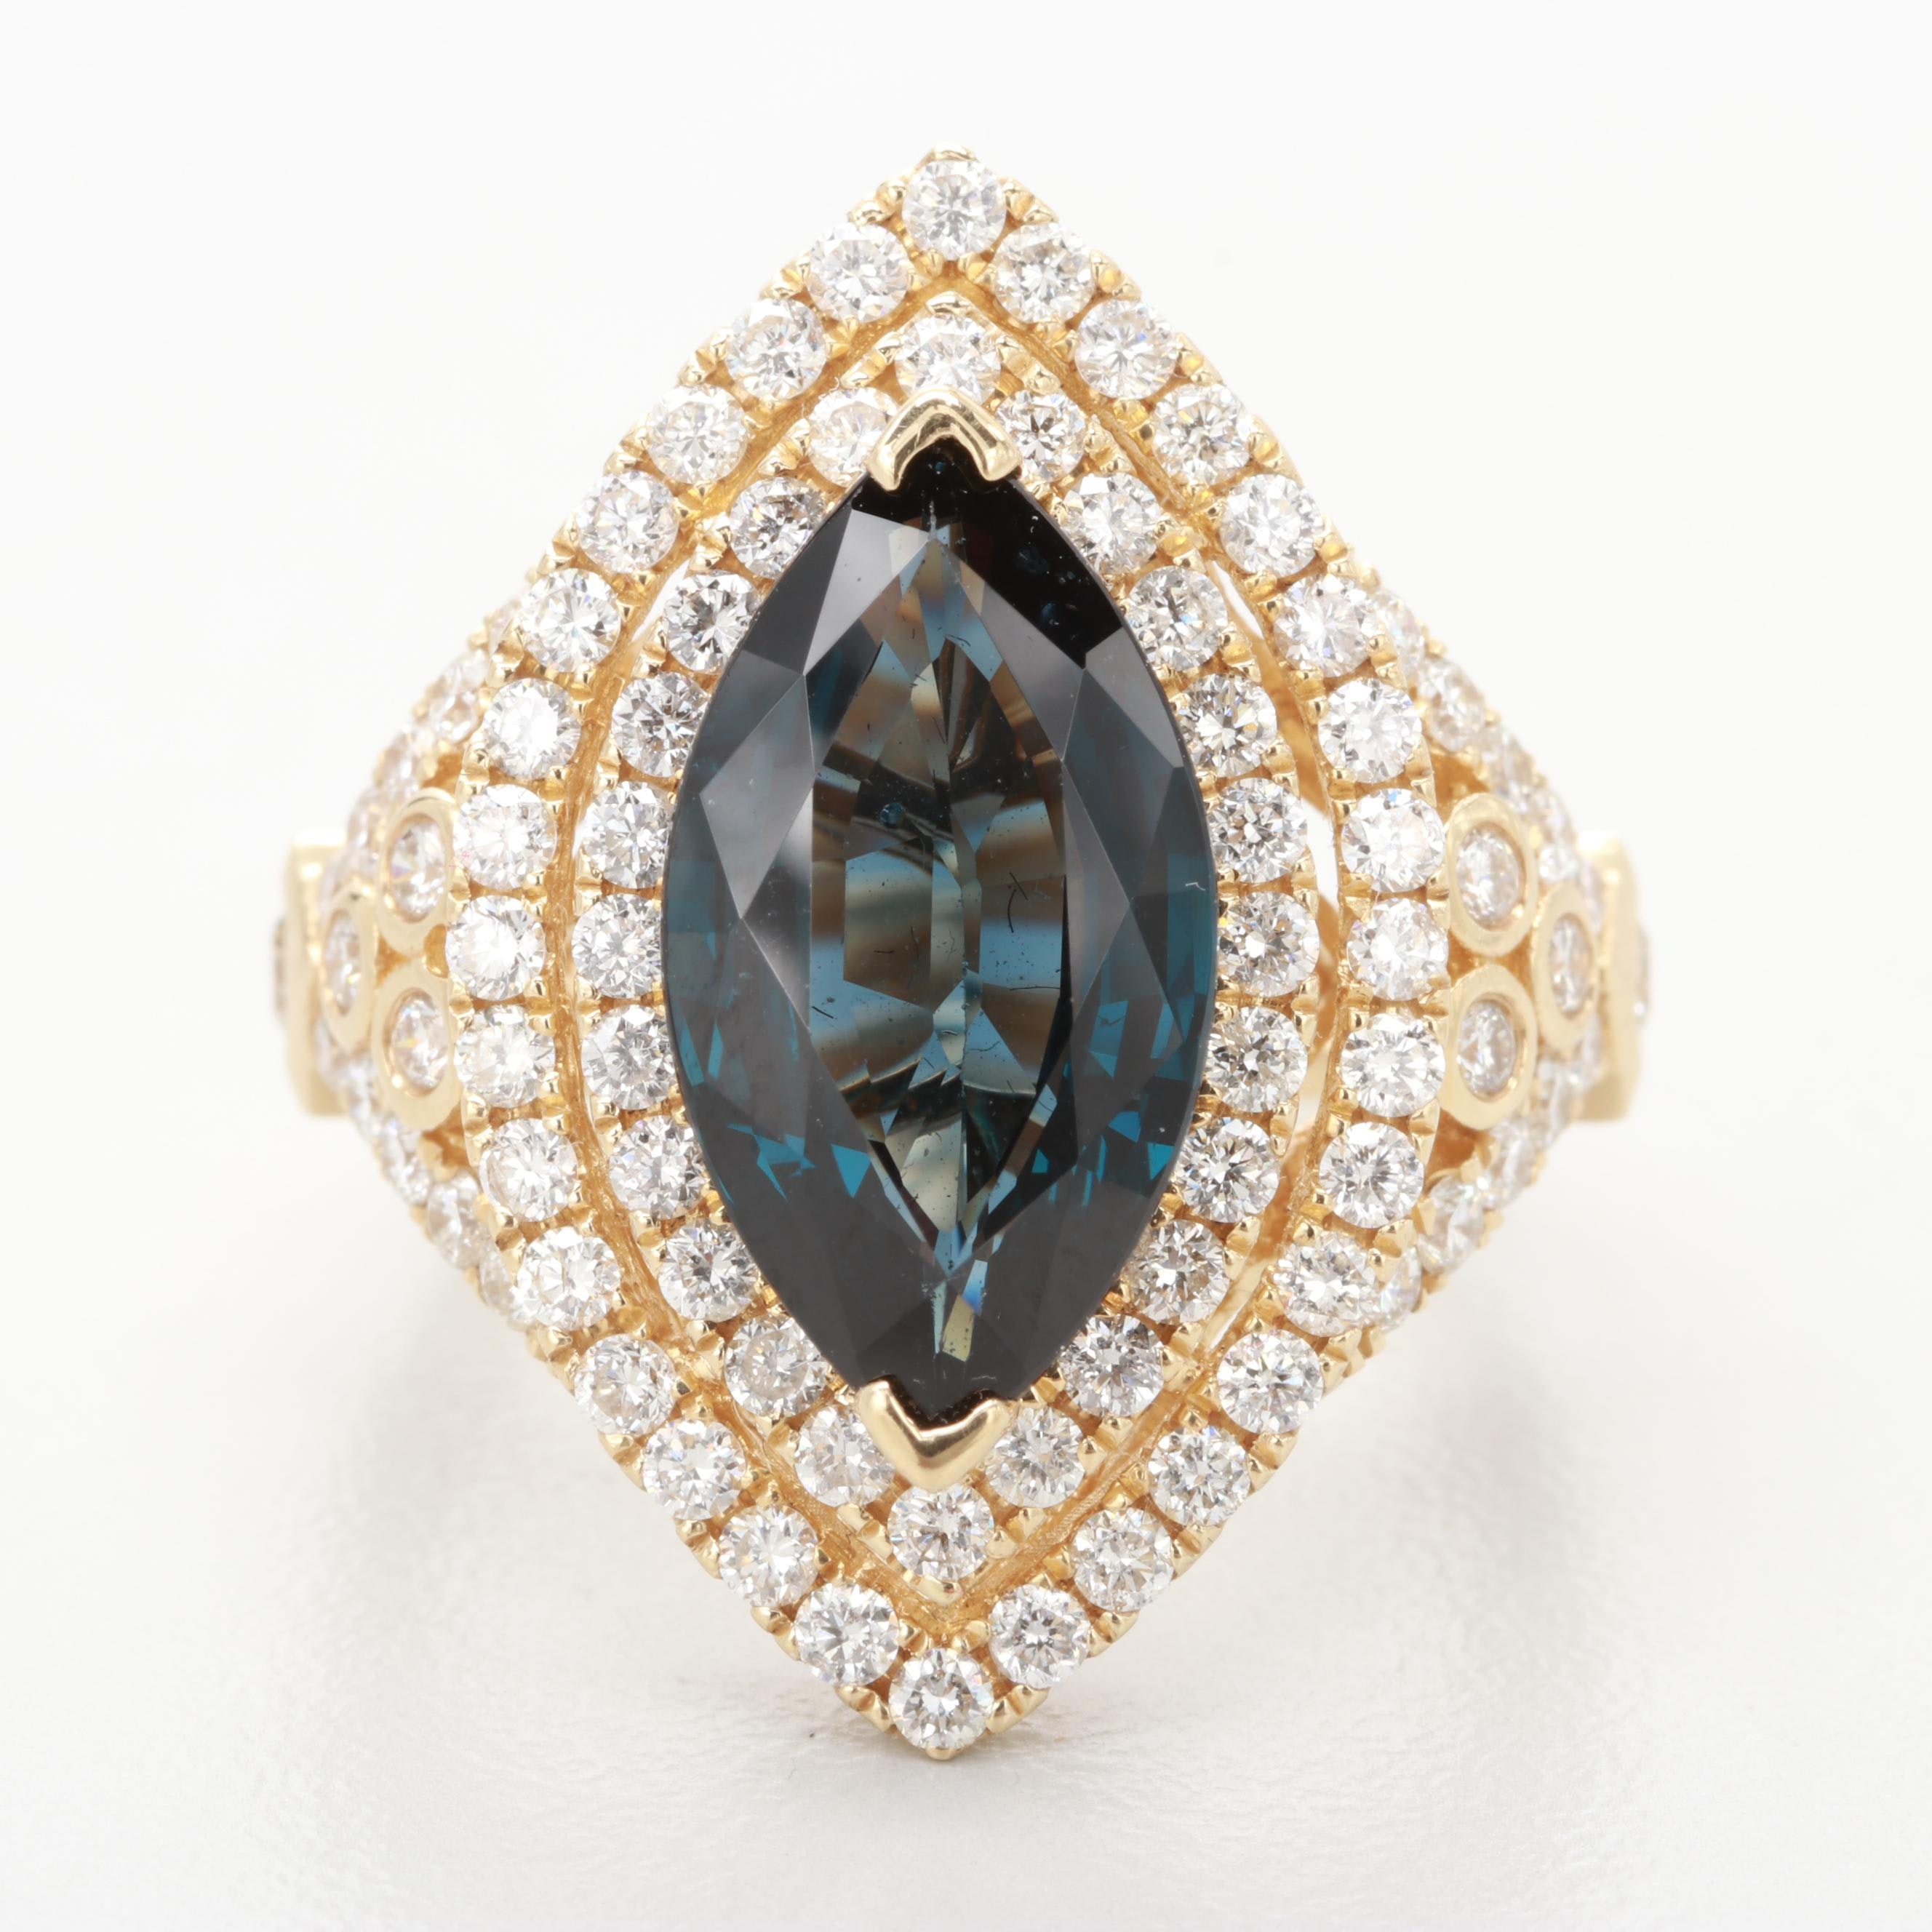 14K Yellow Gold 3.51 CT Spinel and 1.52 CTW Diamond Ring